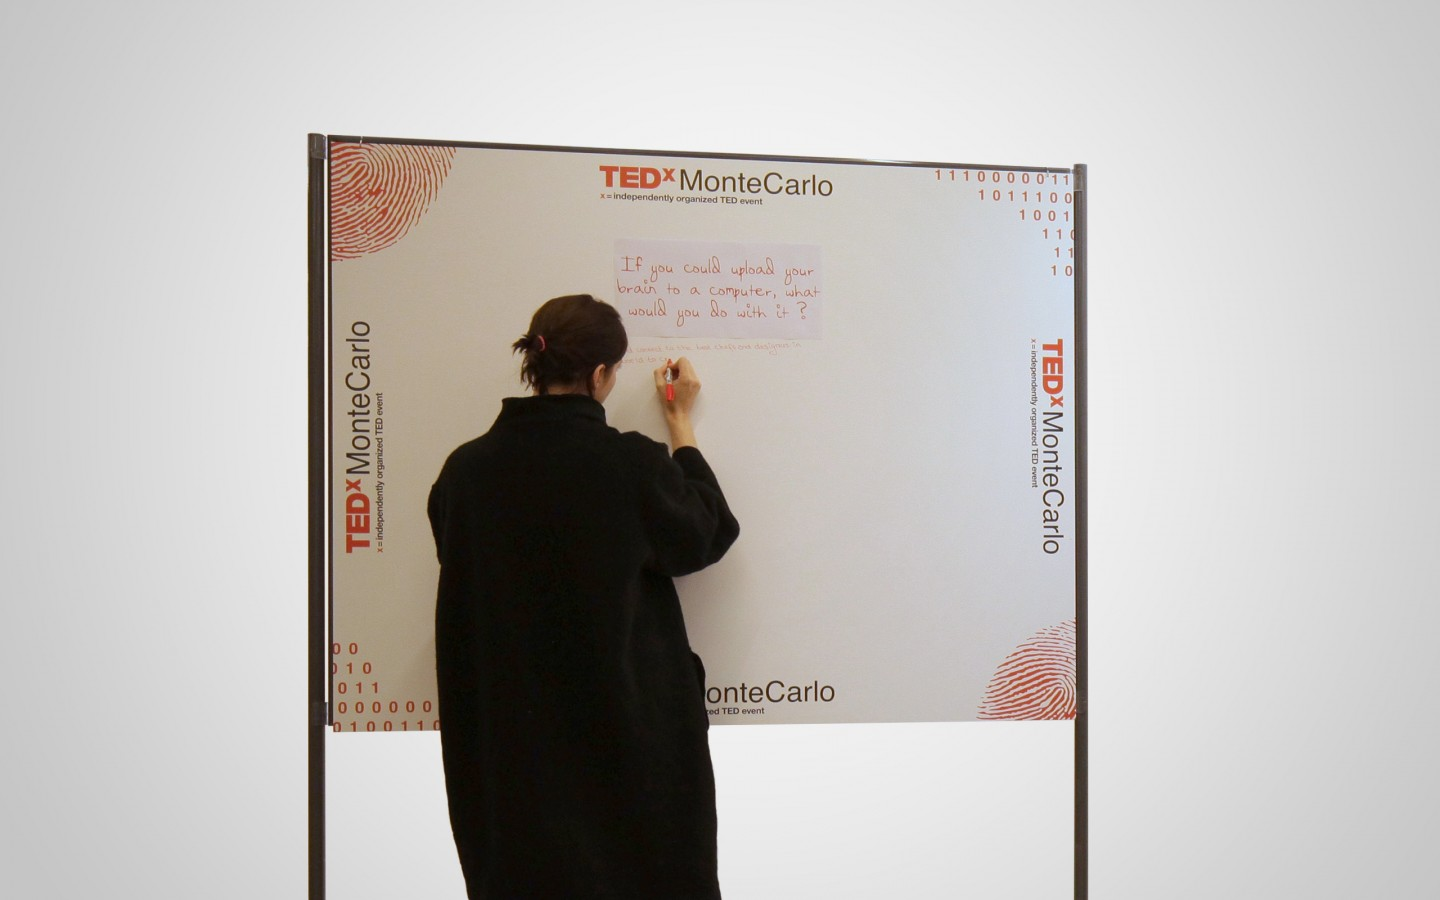 TEDxMonteCarlo 2017 Branding Project by Crevisio